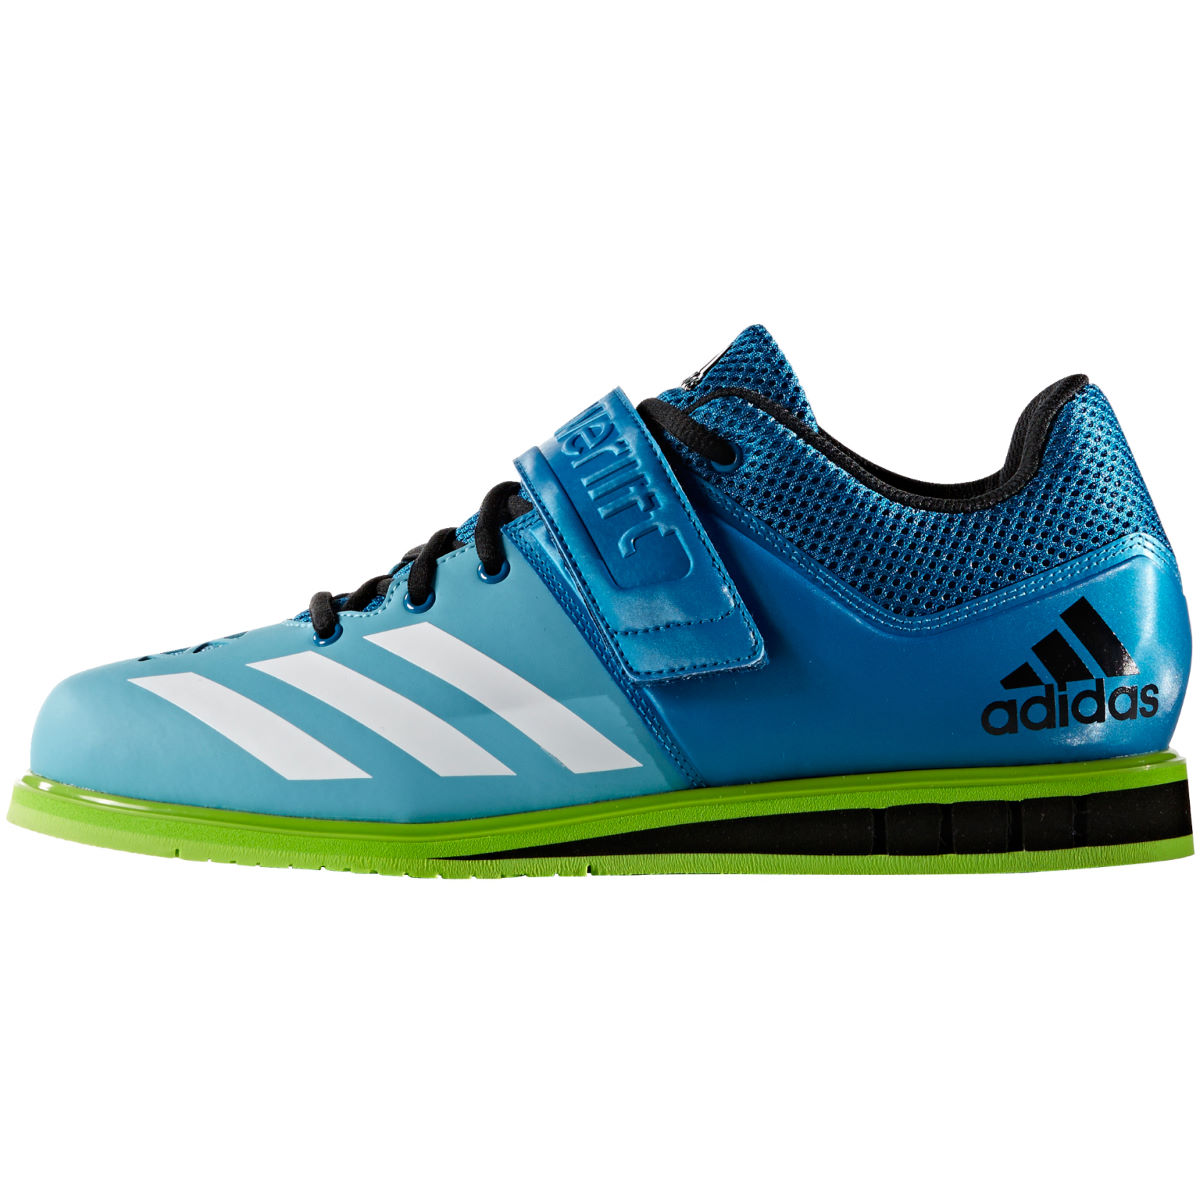 Adidas Powerlift 3 Shoes Review